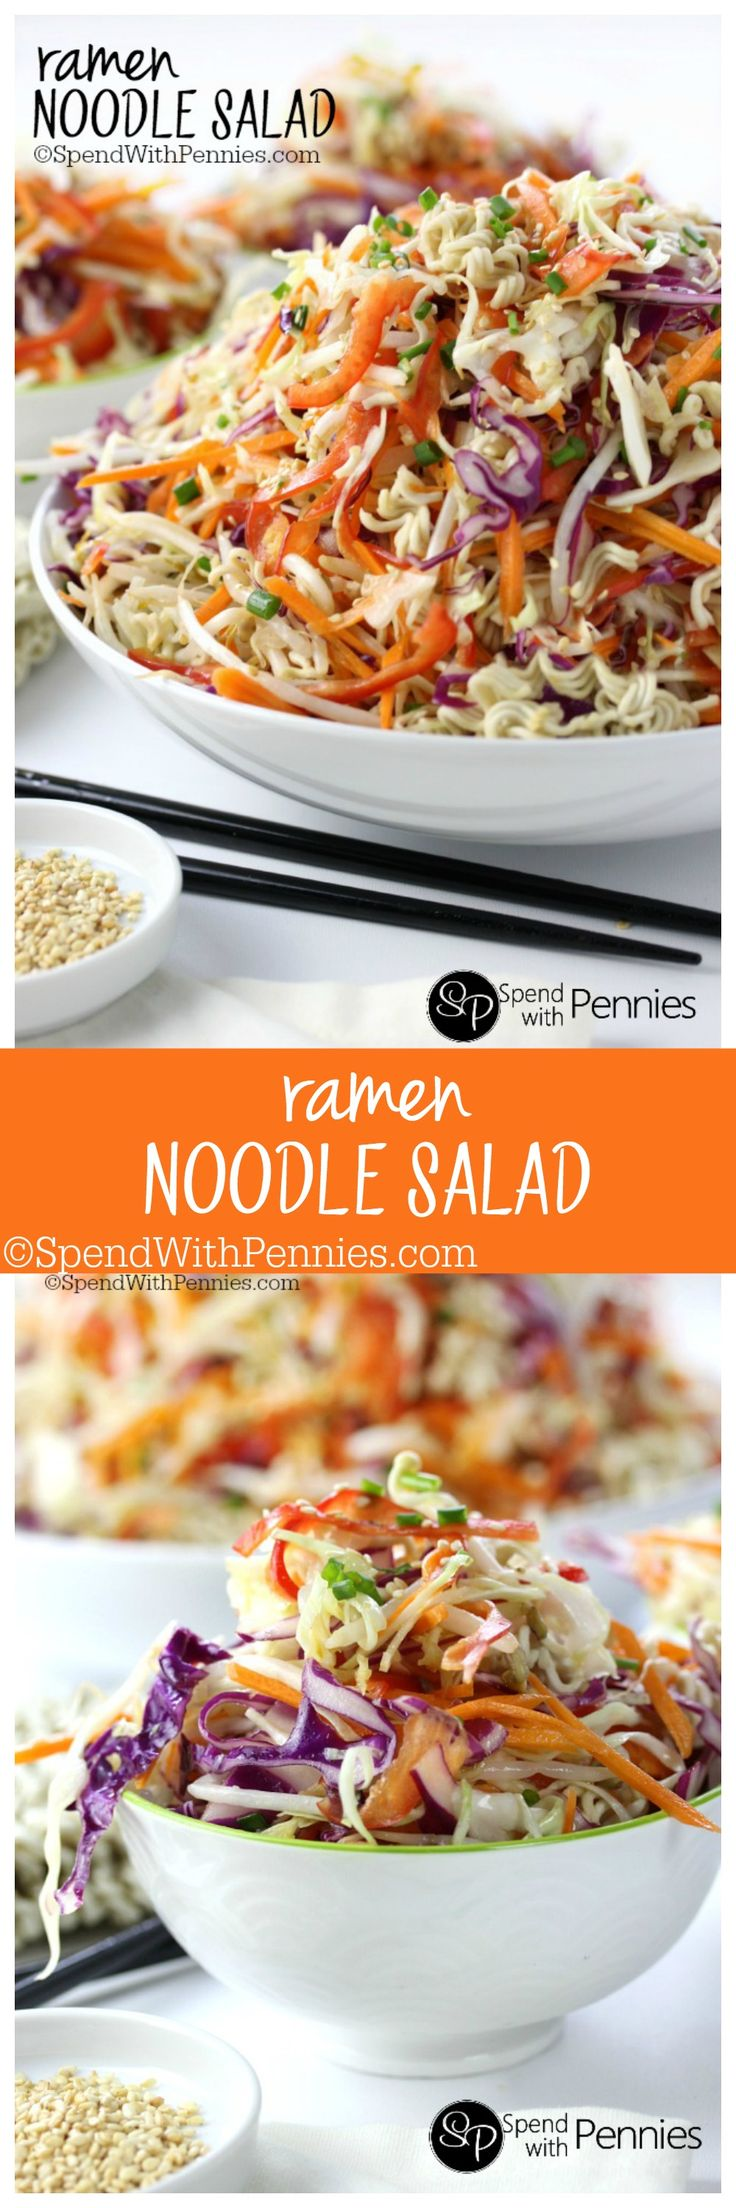 Oriental Ramen Noodle Salad! Crunchy cabbage & tons of yummy veggies with ramen noodles tossed in a quick sesame dressing. This is easy to make & a great summer side and perfect for bbqs! You can u